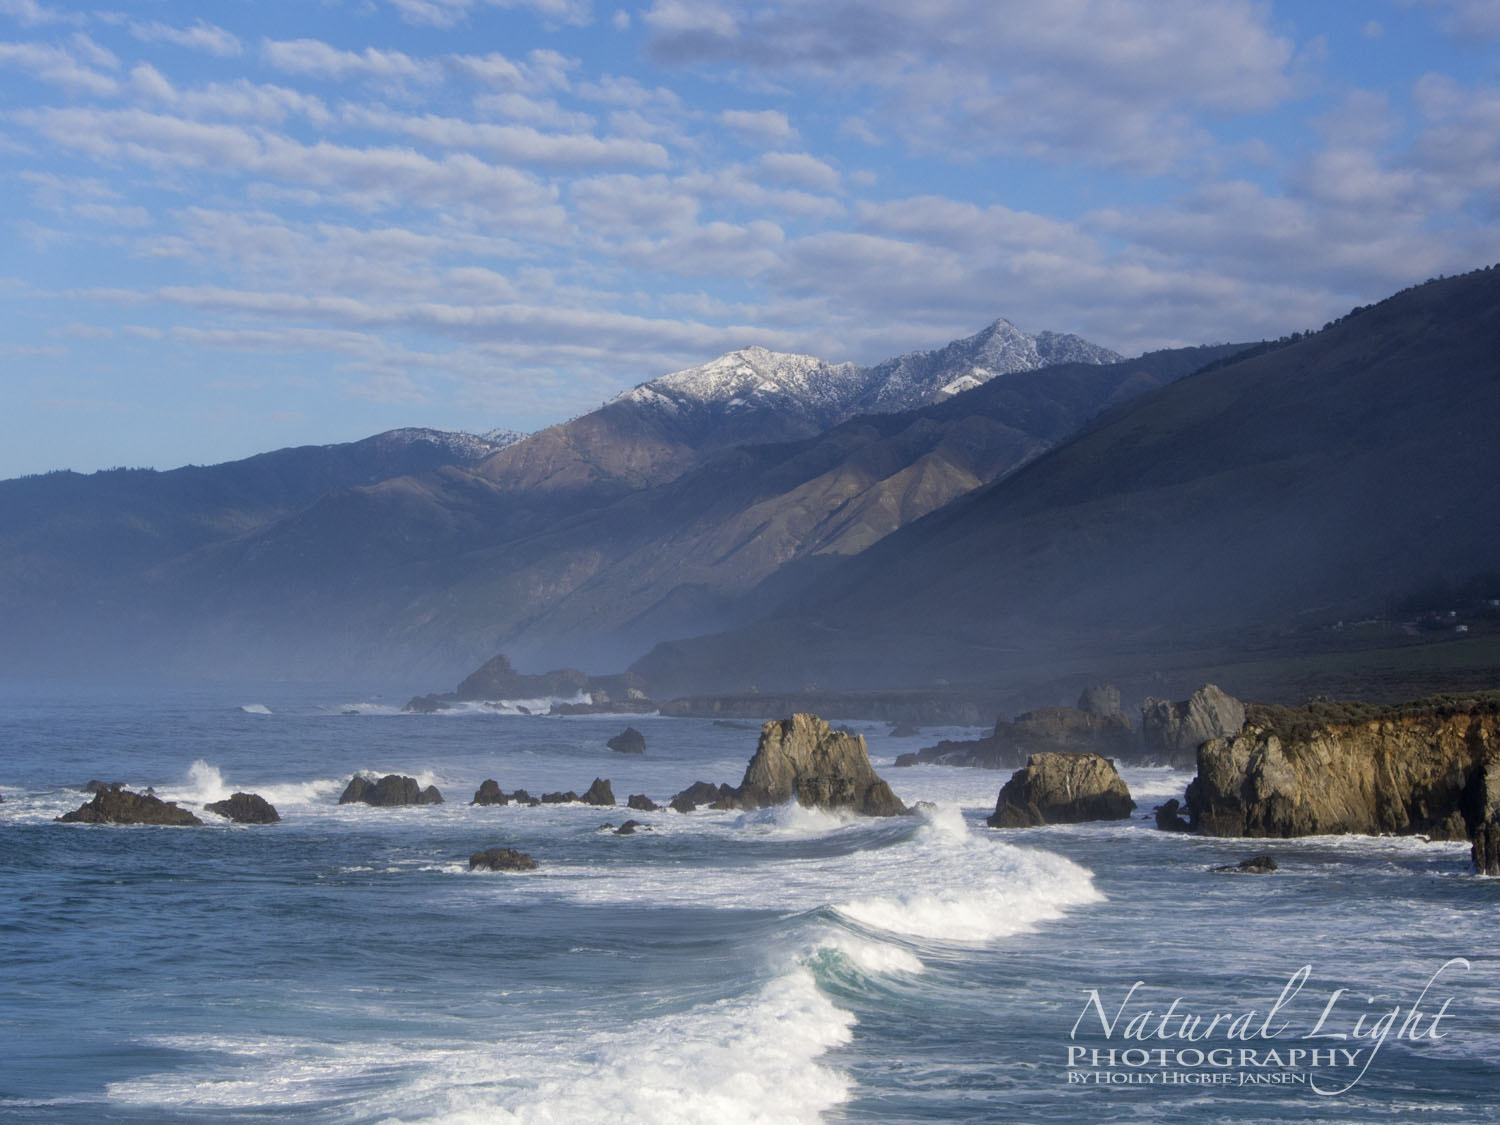 Photograph Big Sur Winter Swell by Holly Higbee-Jansen on 500px